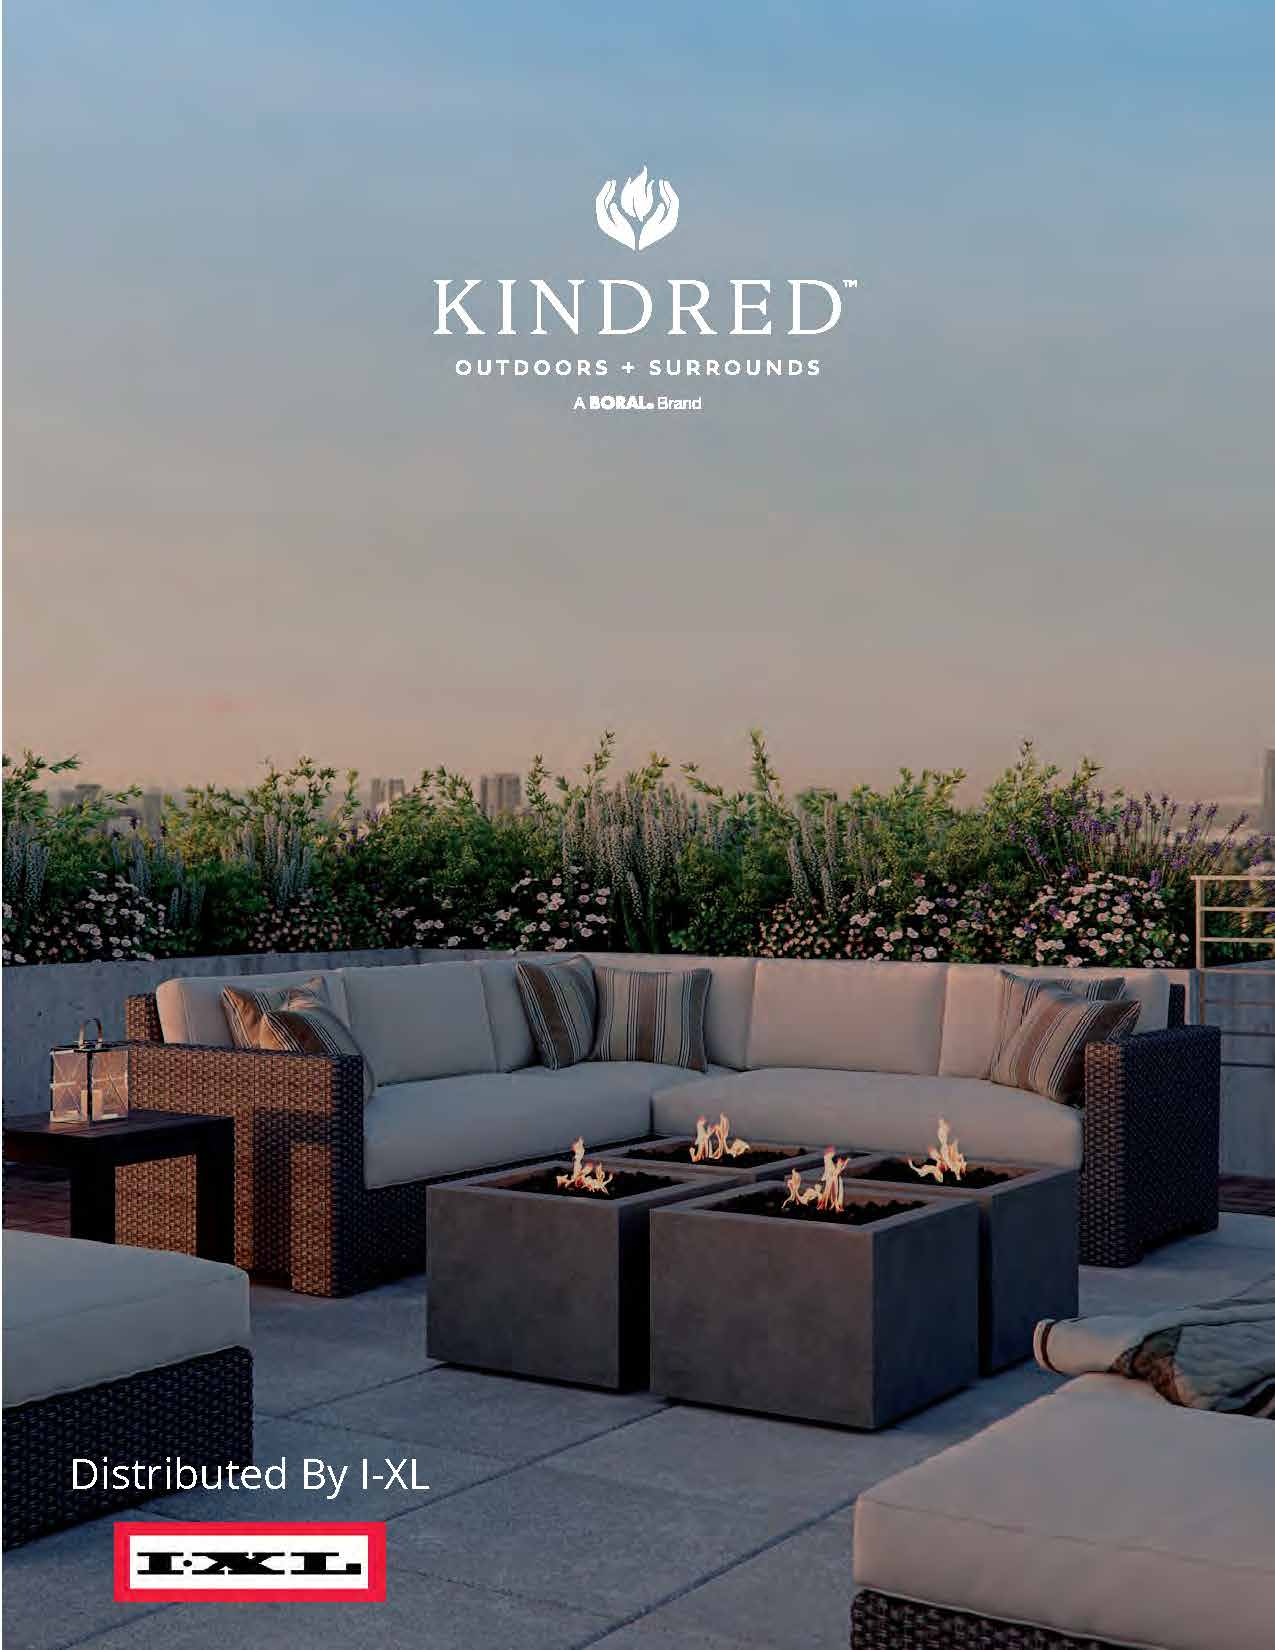 Kindred Outdoors & Surrounds Brochure